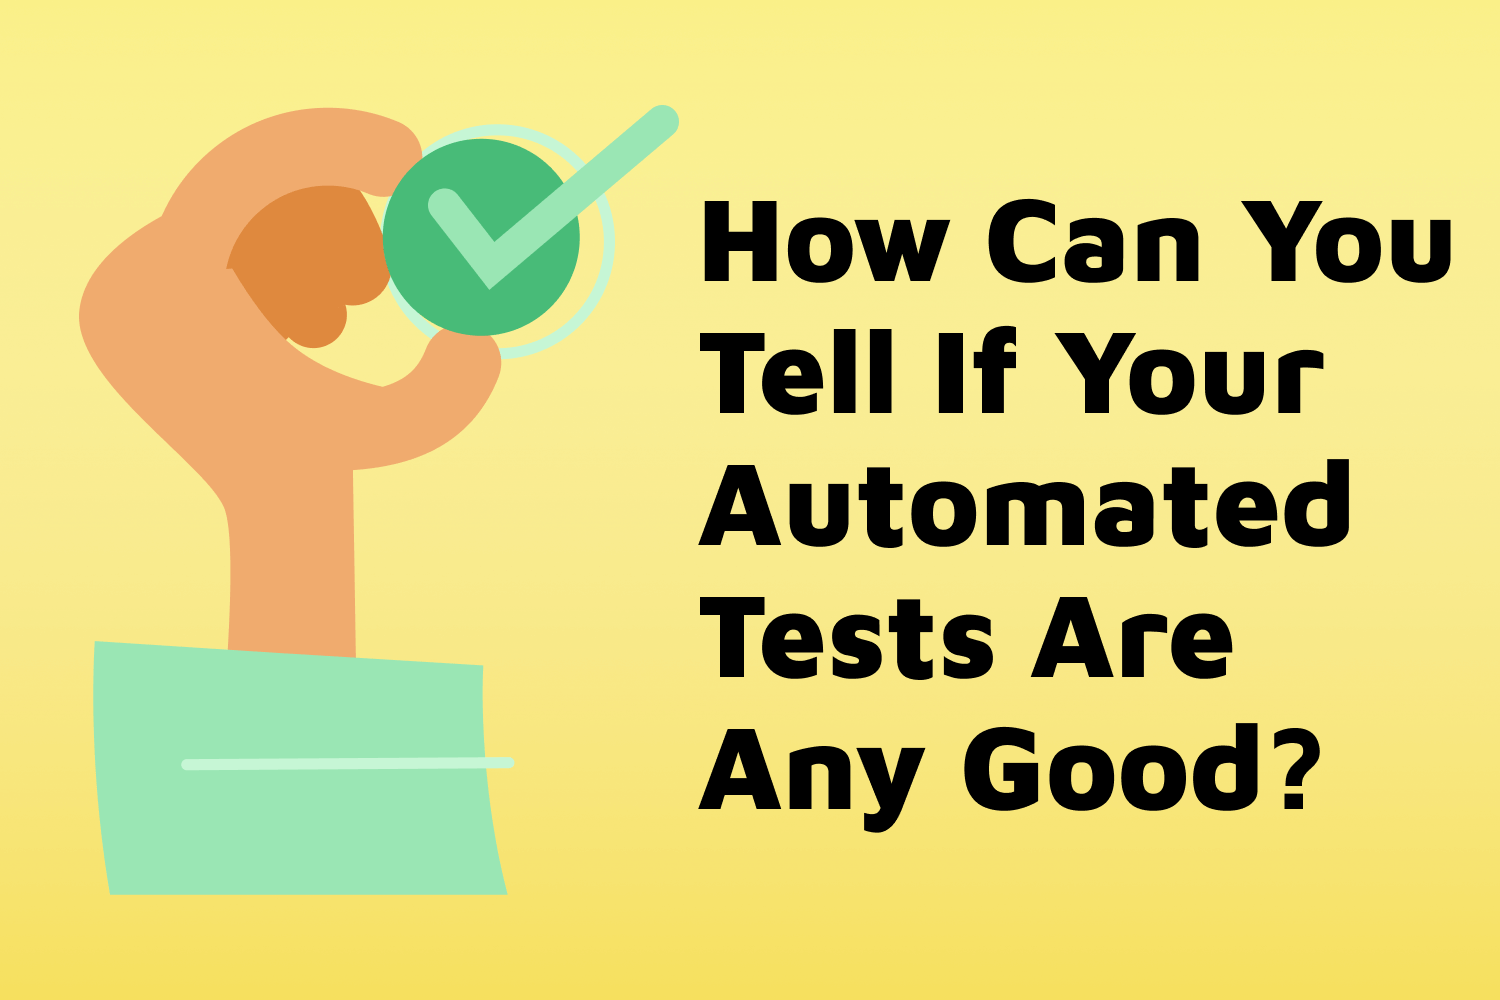 How Can You Tell If Your Automated Tests Are Any Good?